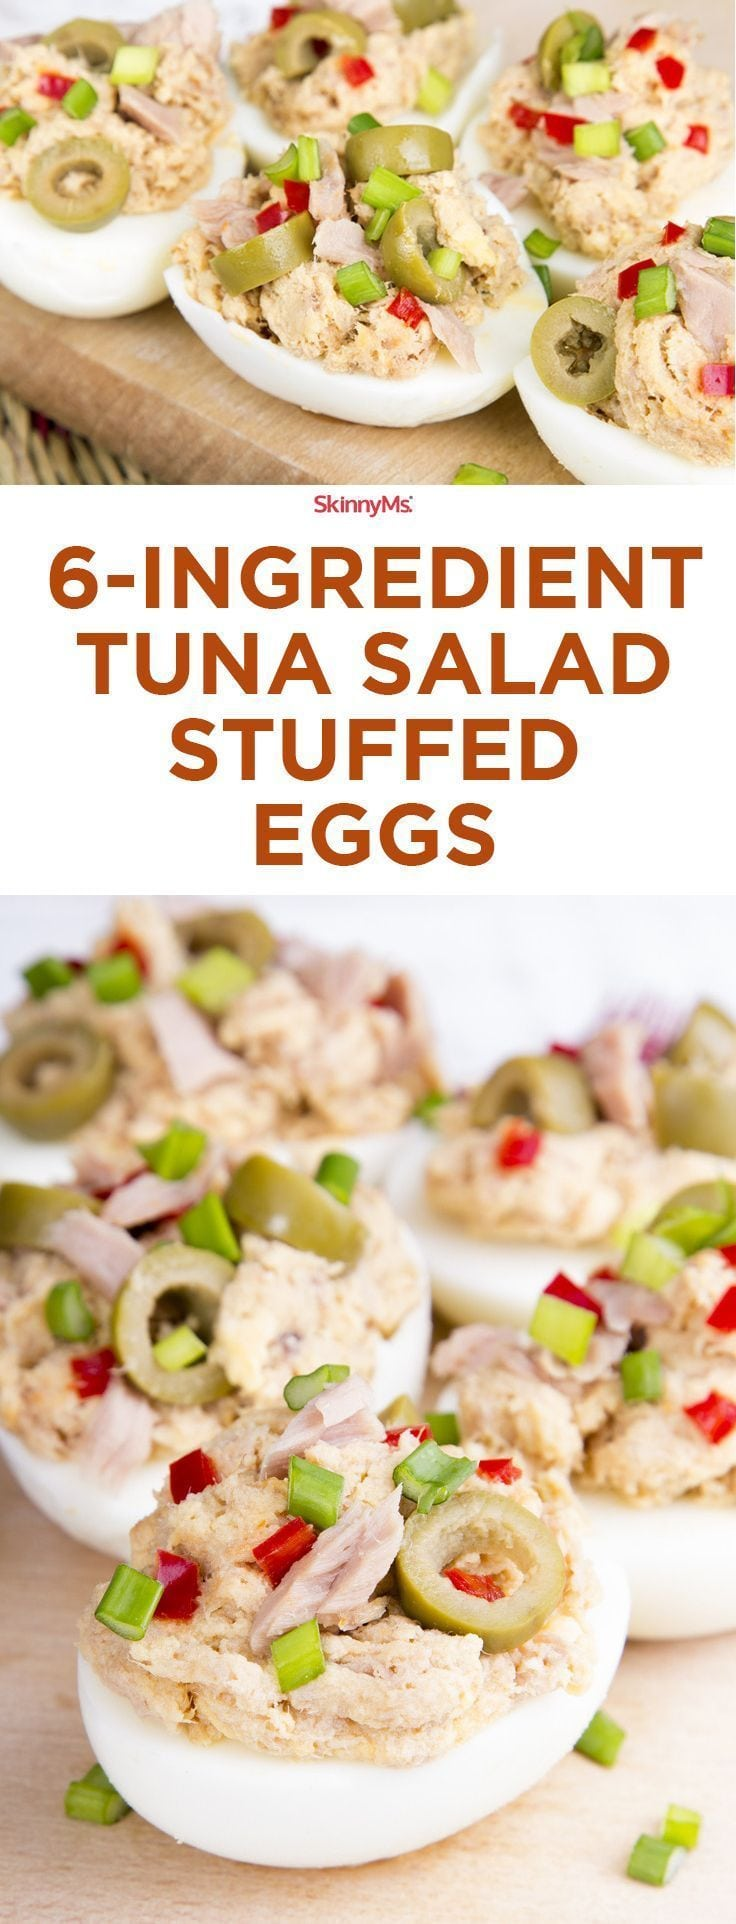 6-Ingredient Tuna Salad Stuffed Eggs – you've never had tuna salad like this before! #skinnyms Source by skinnyms   …